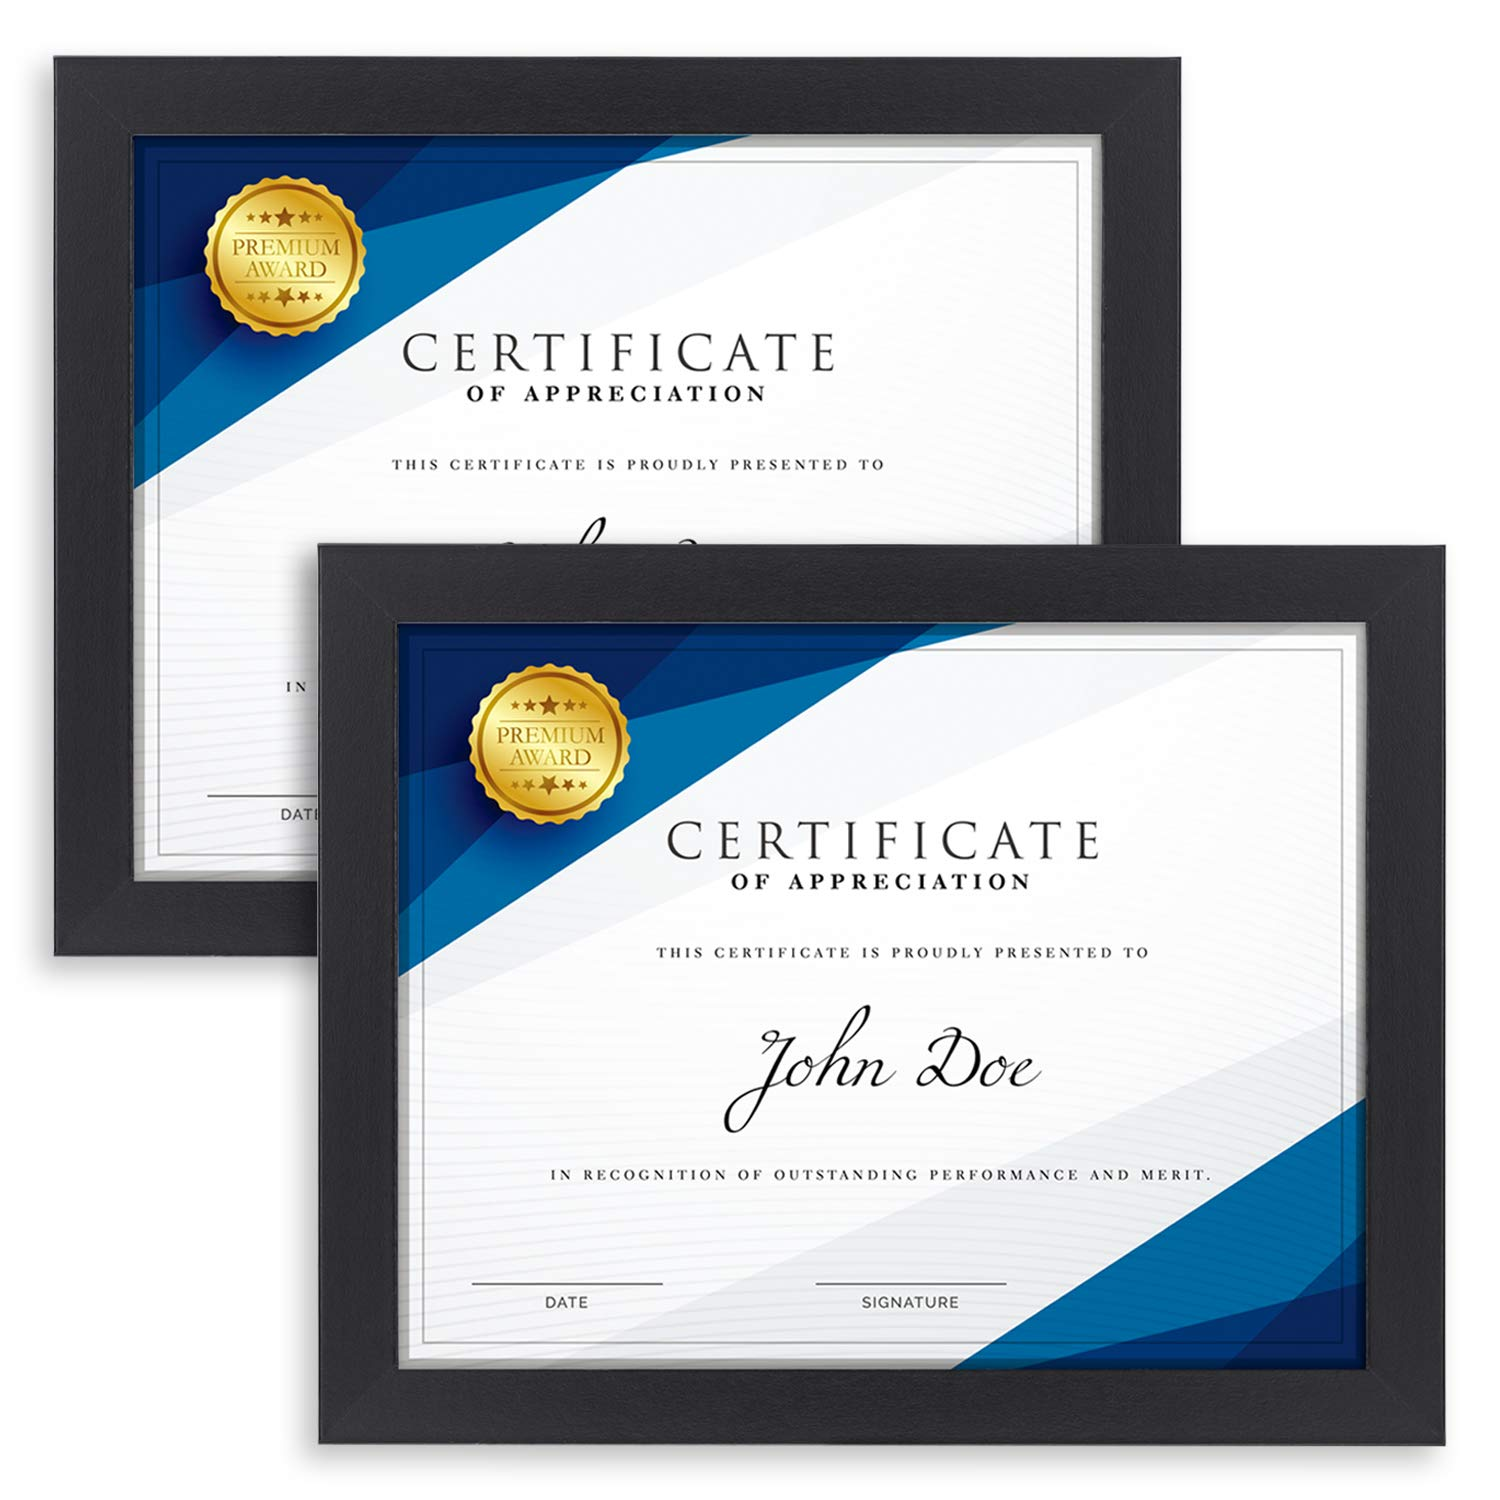 Langdon House Diploma Frame (2 Pack, Black) 8.5 x 11 Certificate Frame, Sturdy Wood Composite, Wall Mount Hooks Included with Black Picture Frames for Documents, Prima Collection by Langdon House